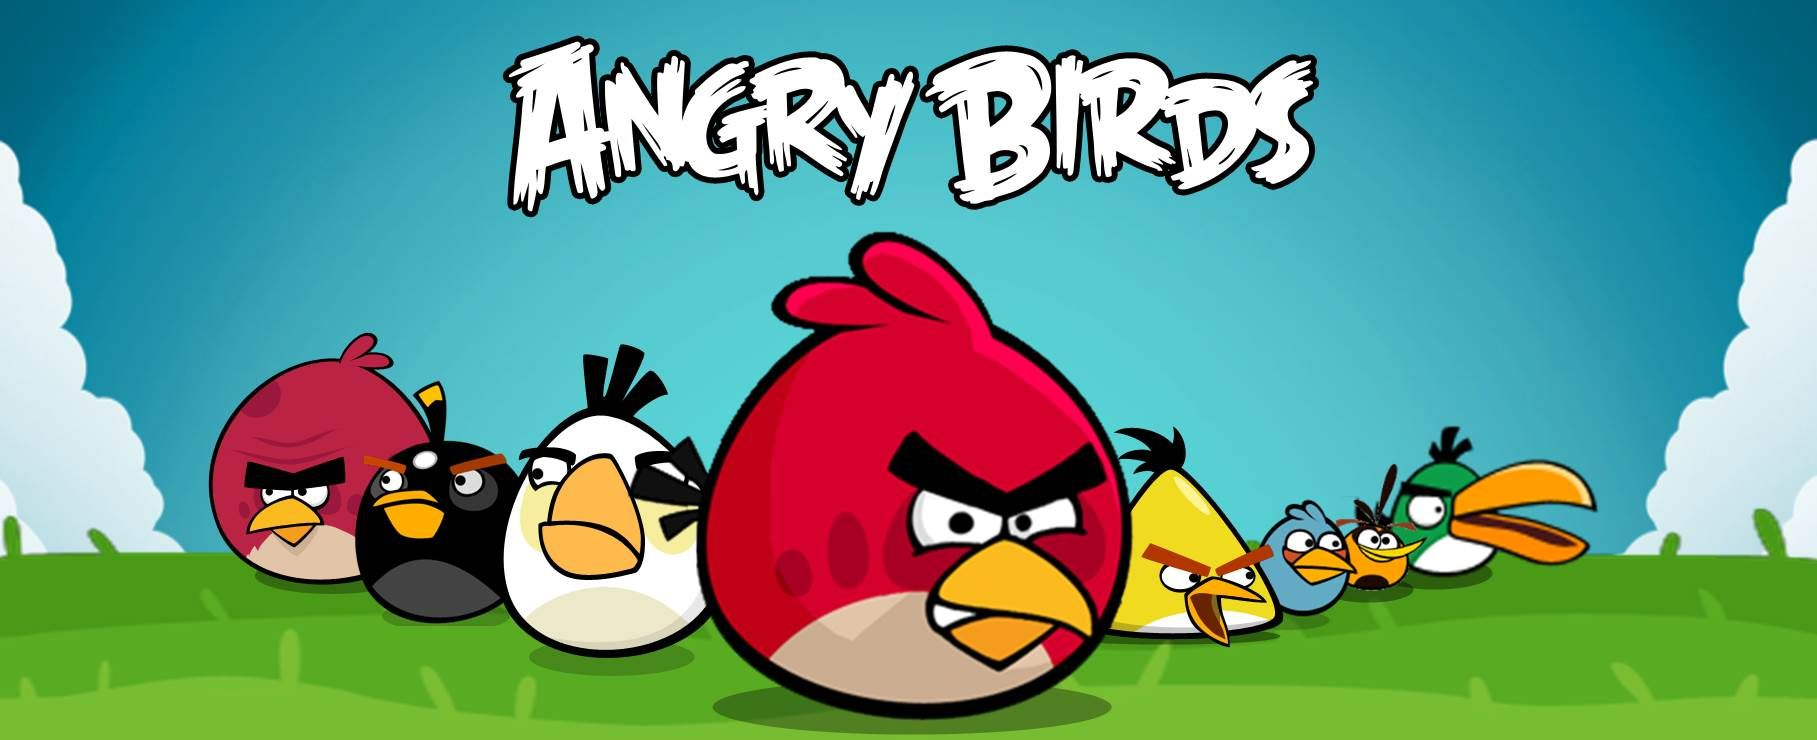 angry birds hd desktop wallpaper : high definition 1024×770 angry